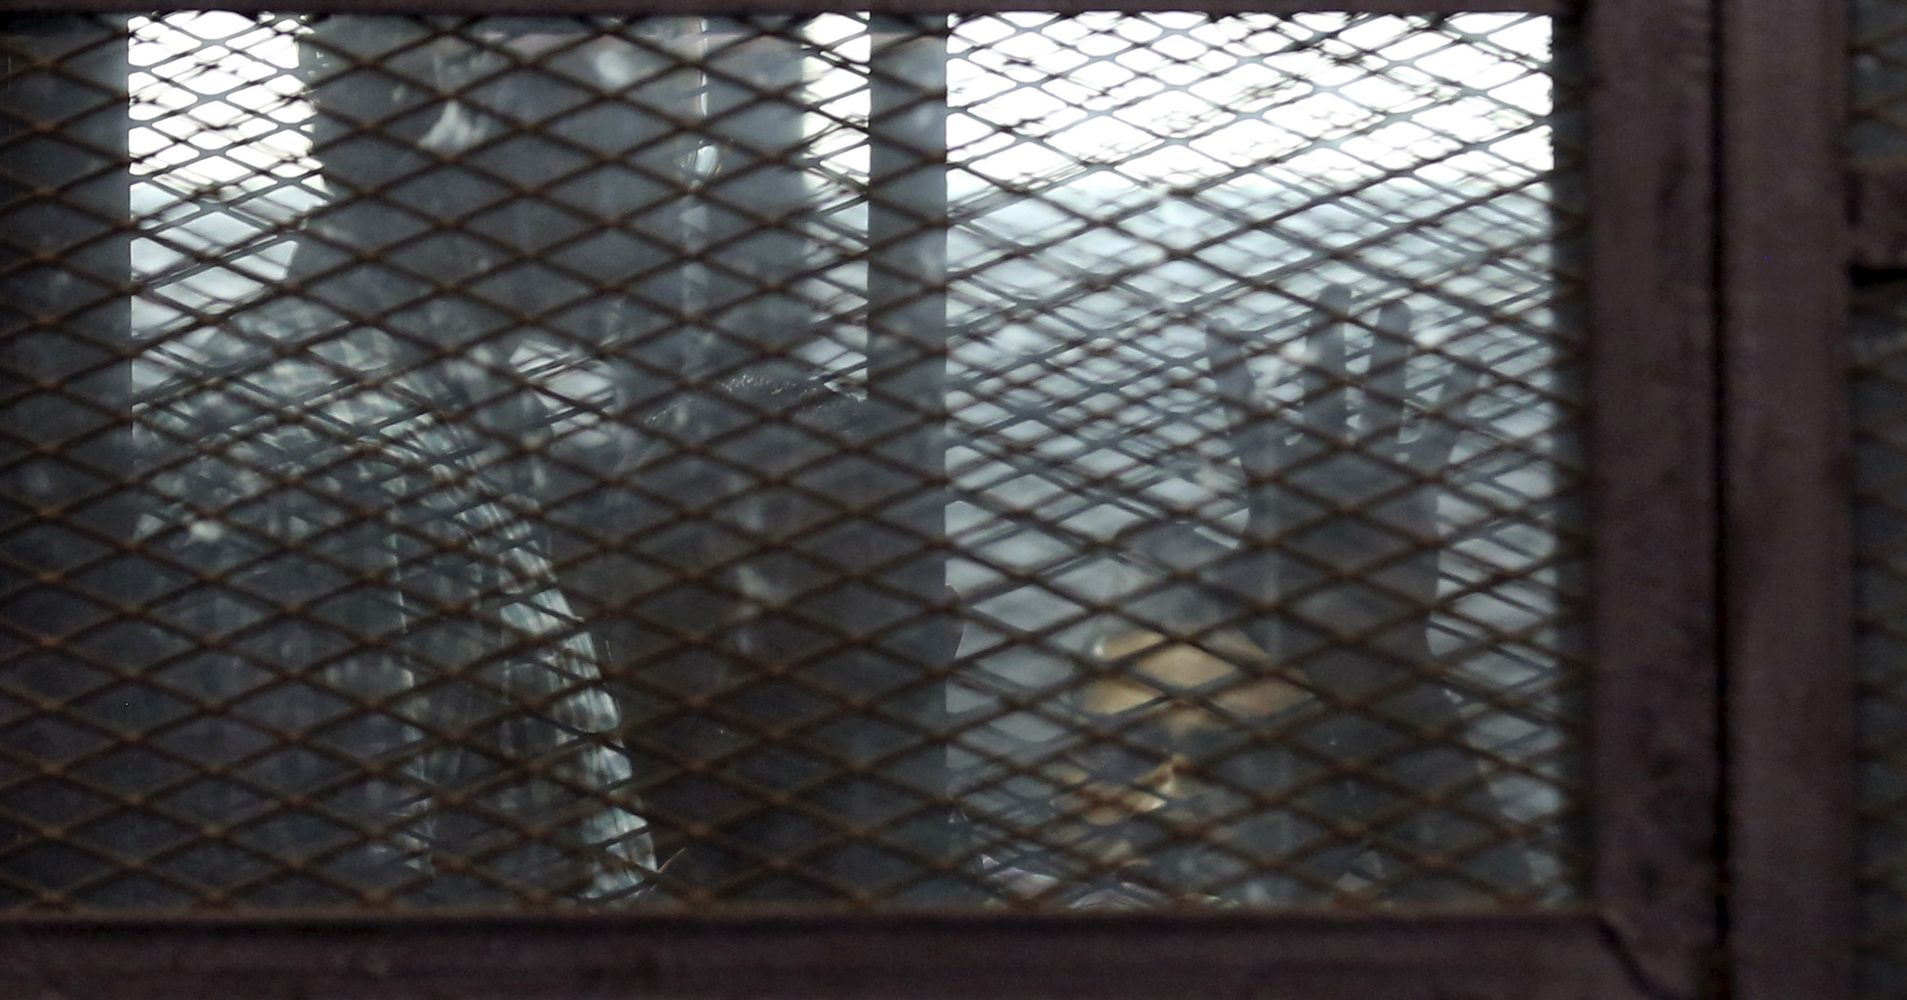 Egyptian Prisoners Endure \'Assembly Line\' Of Torture, Investigation ...